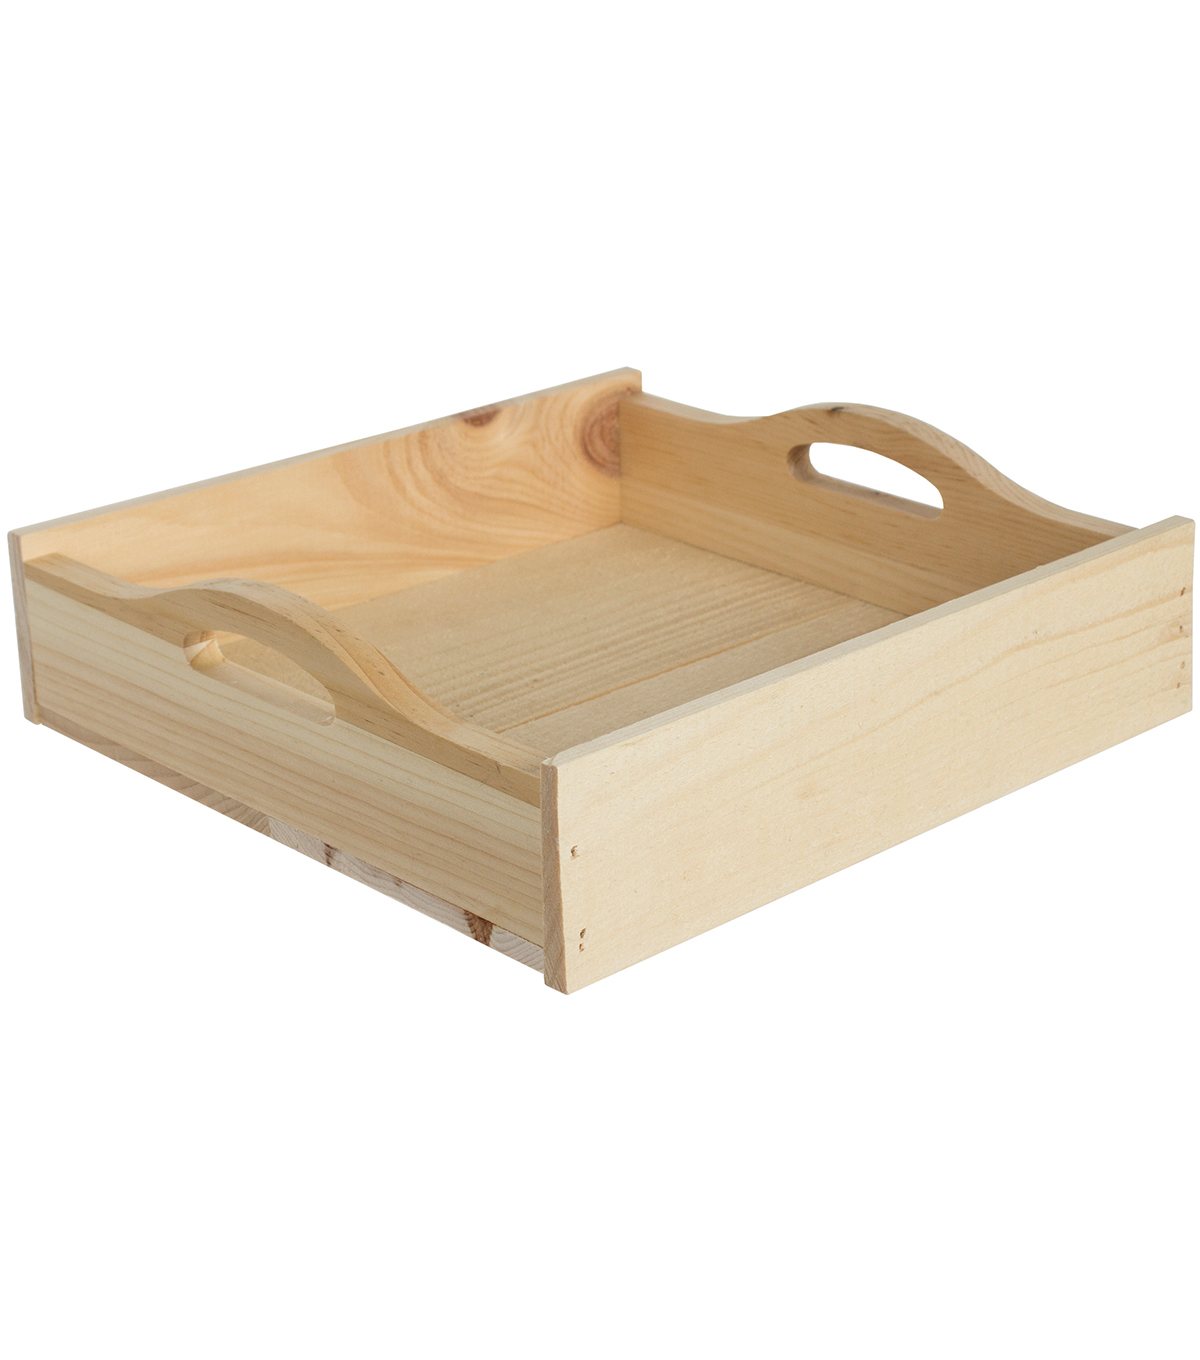 Walnut Hollow Square Rustic Tray